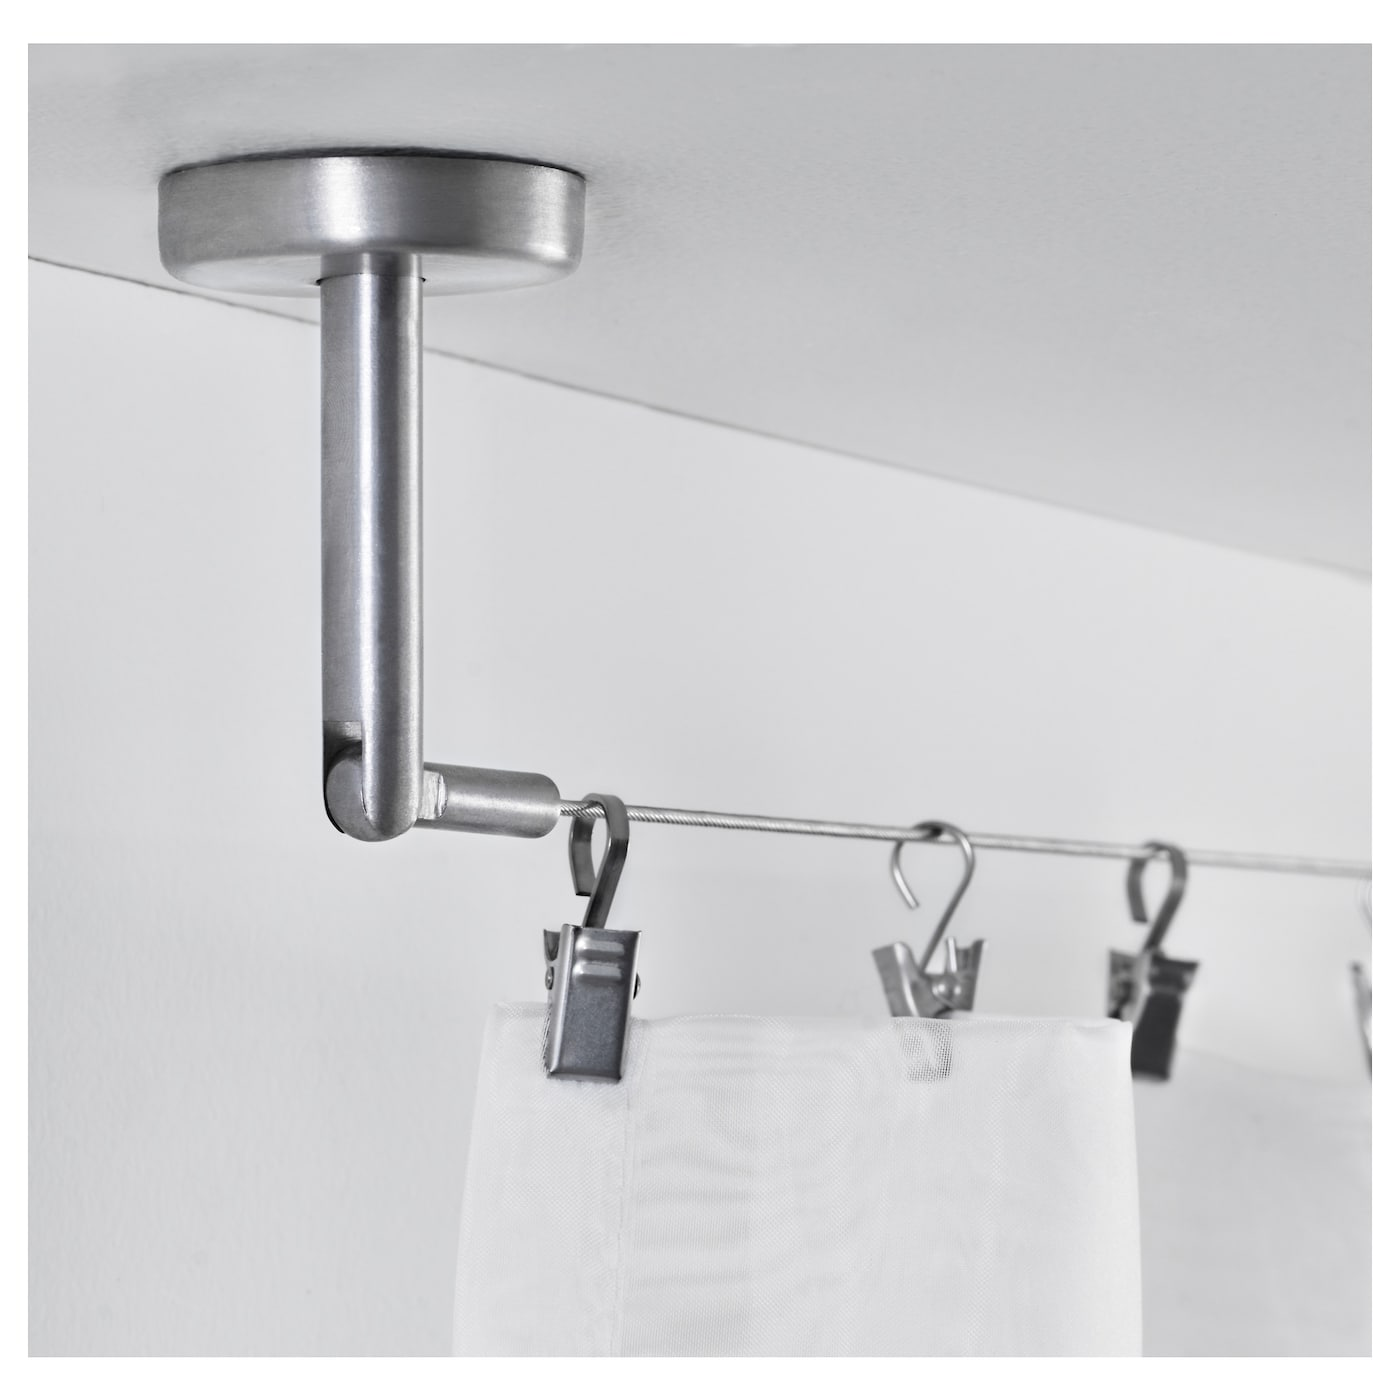 Dignitet Curtain Wire Stainless Steel 500 Cm Ikea Wiring Through Walls And Ceilings Fittings With Adjustable Angle For More Flexible Use